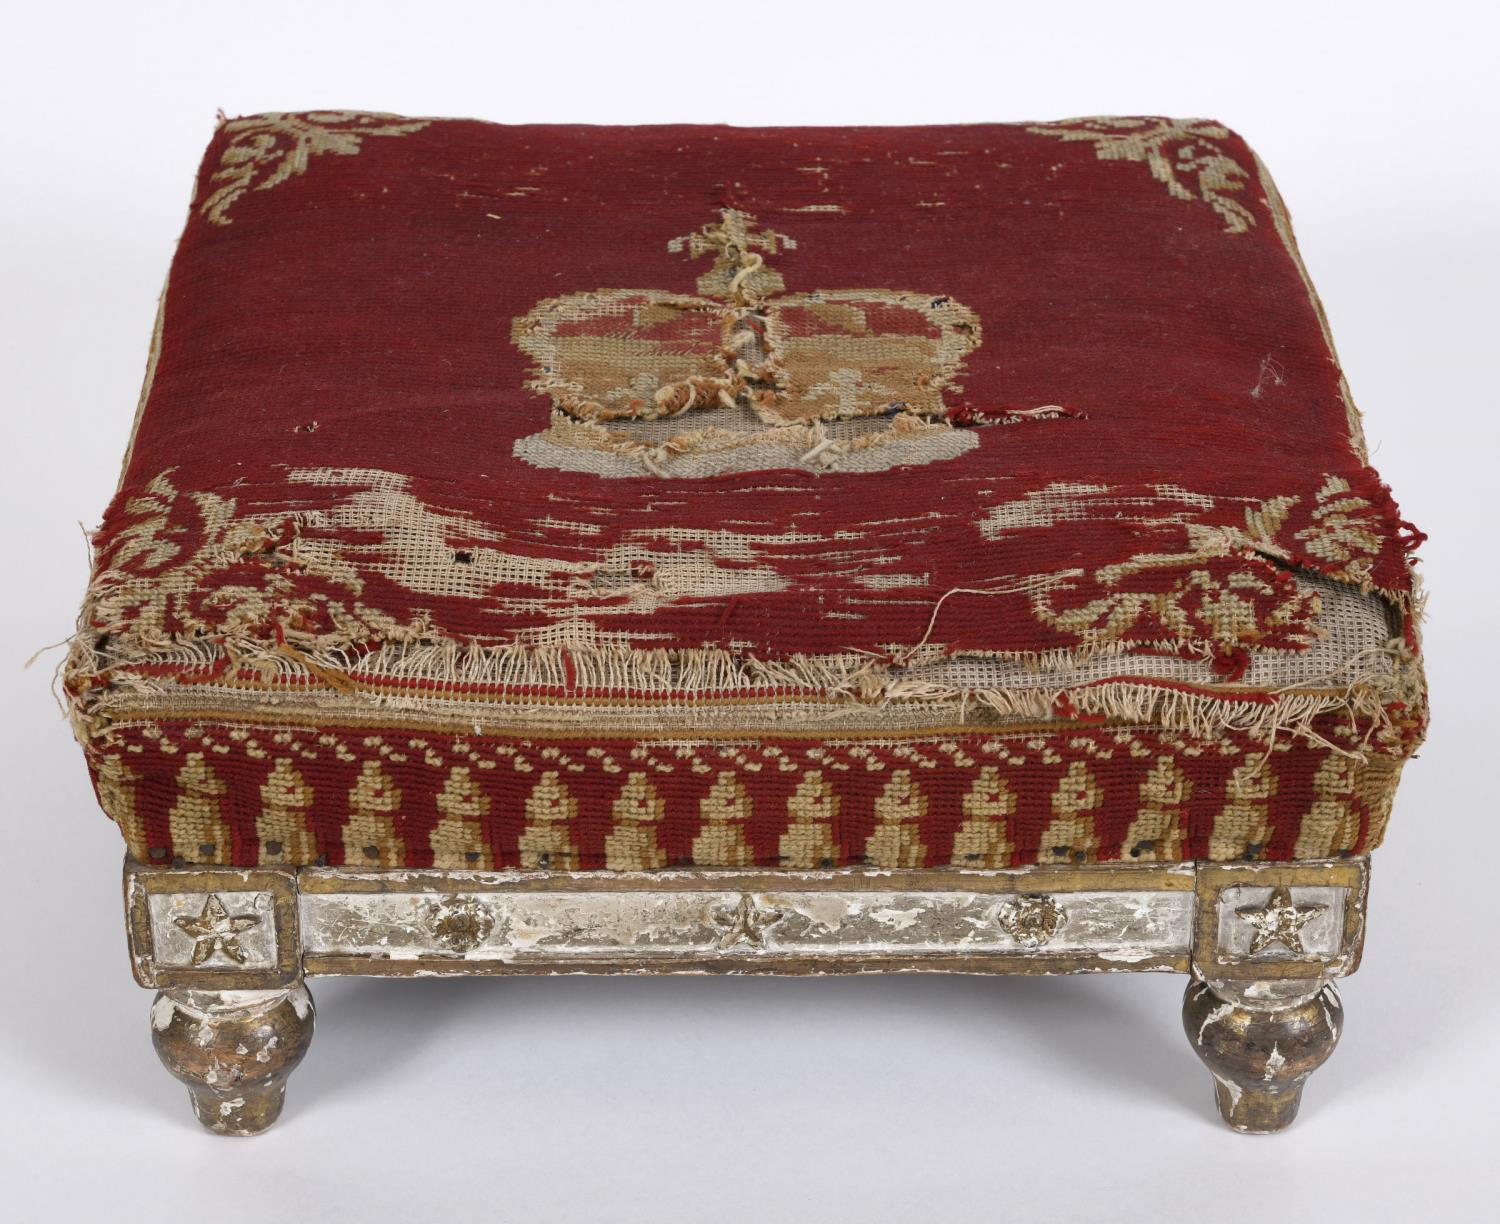 A WILLIAM IV STOOL, POSSIBLY A CORONATION STOOL. A fine needlework and gilt gesso stool, the - Image 3 of 3